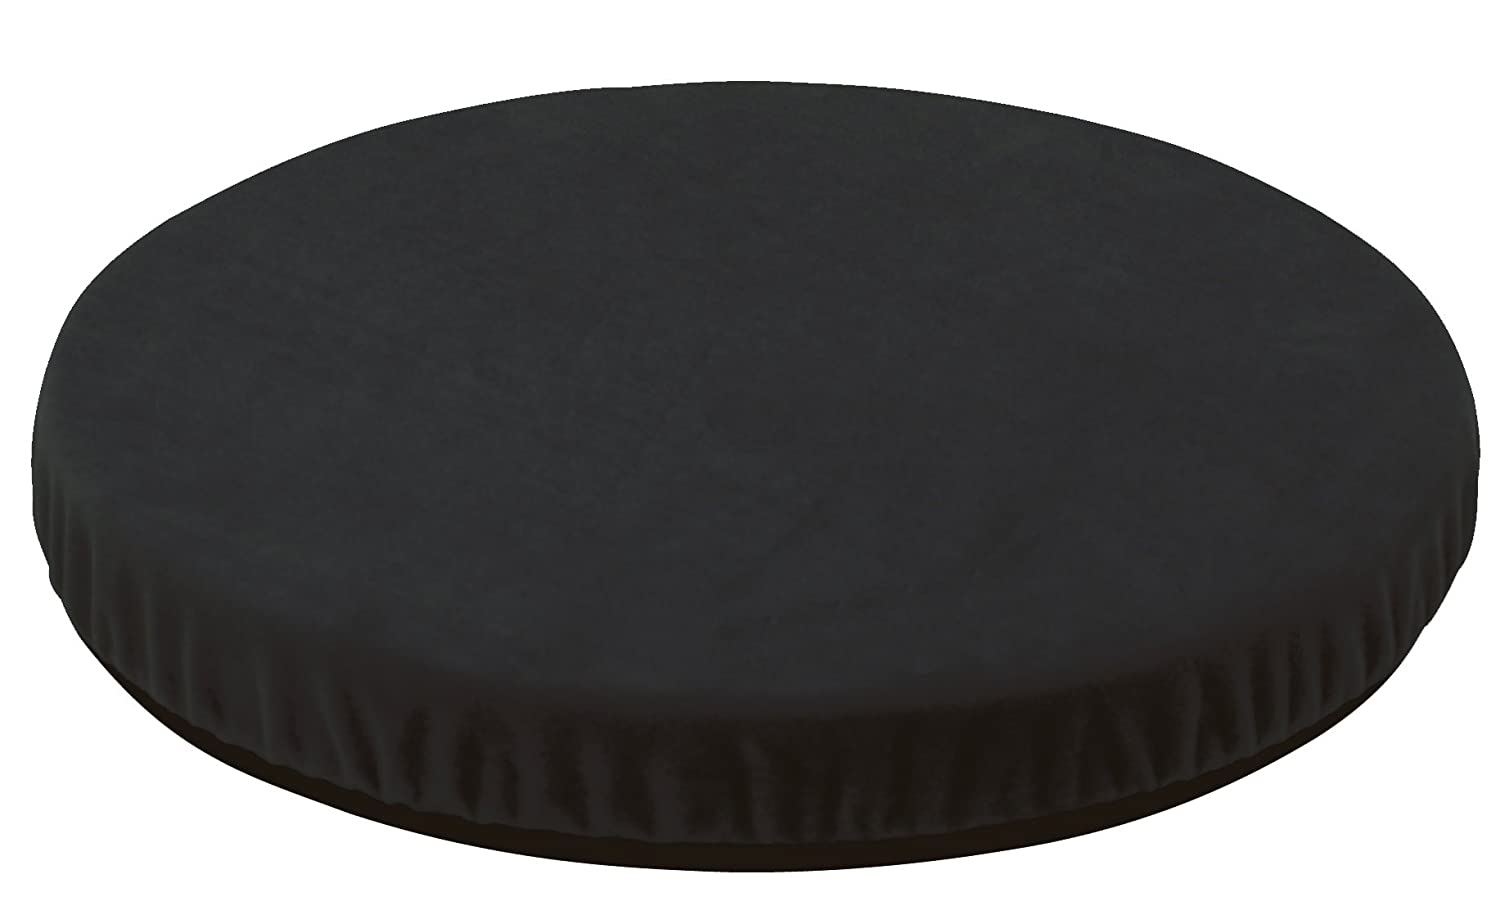 for Vehicle Home and Office Simply SSC001 Black Universal 360 Degree Rotating Car Chair Foam Swivel Seat Cushion Easy Access Mobility Aid Reduces Strain on Back Hip and Knees Prevent Sliding